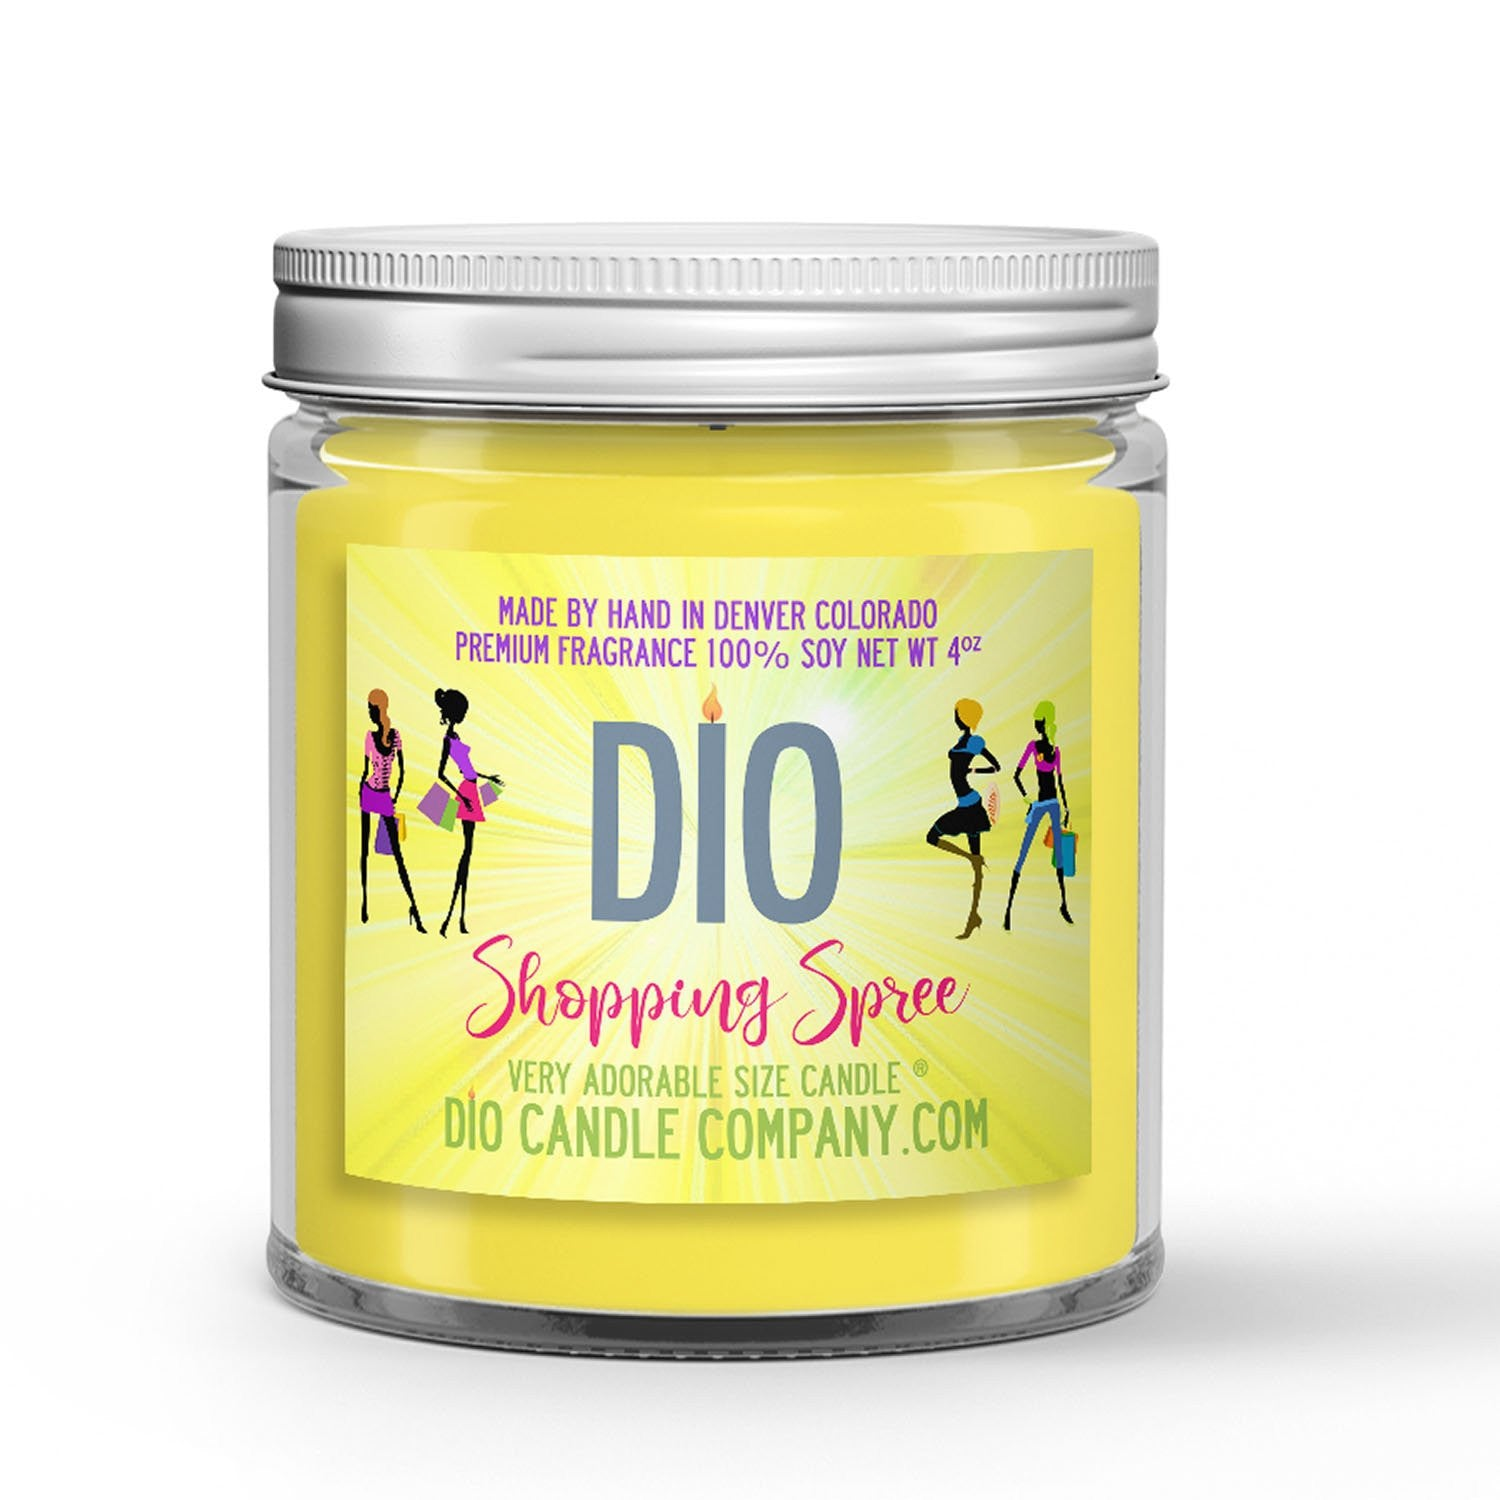 Shopping Spree Candle - CK1 Type - New Blouse - 4oz Very Adorable Size Candle® - Dio Candle Company